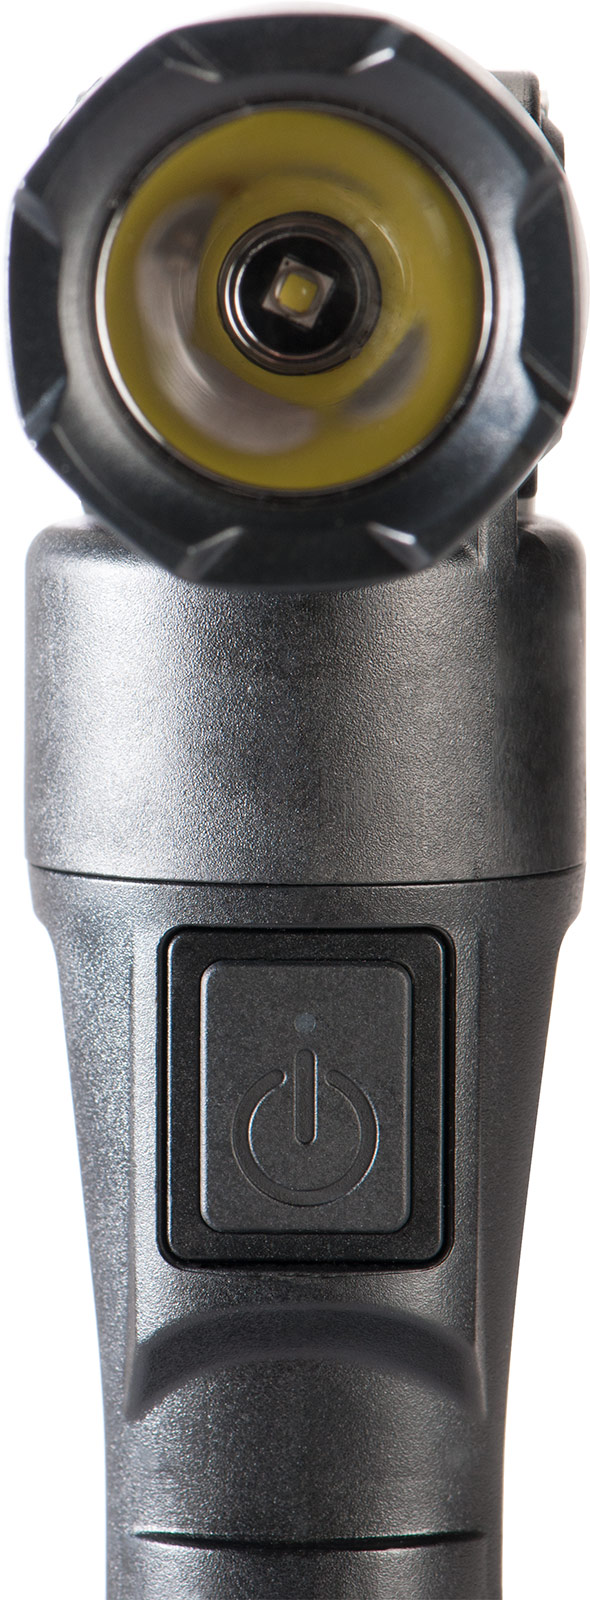 pelican 3315r safety certified black flashlight